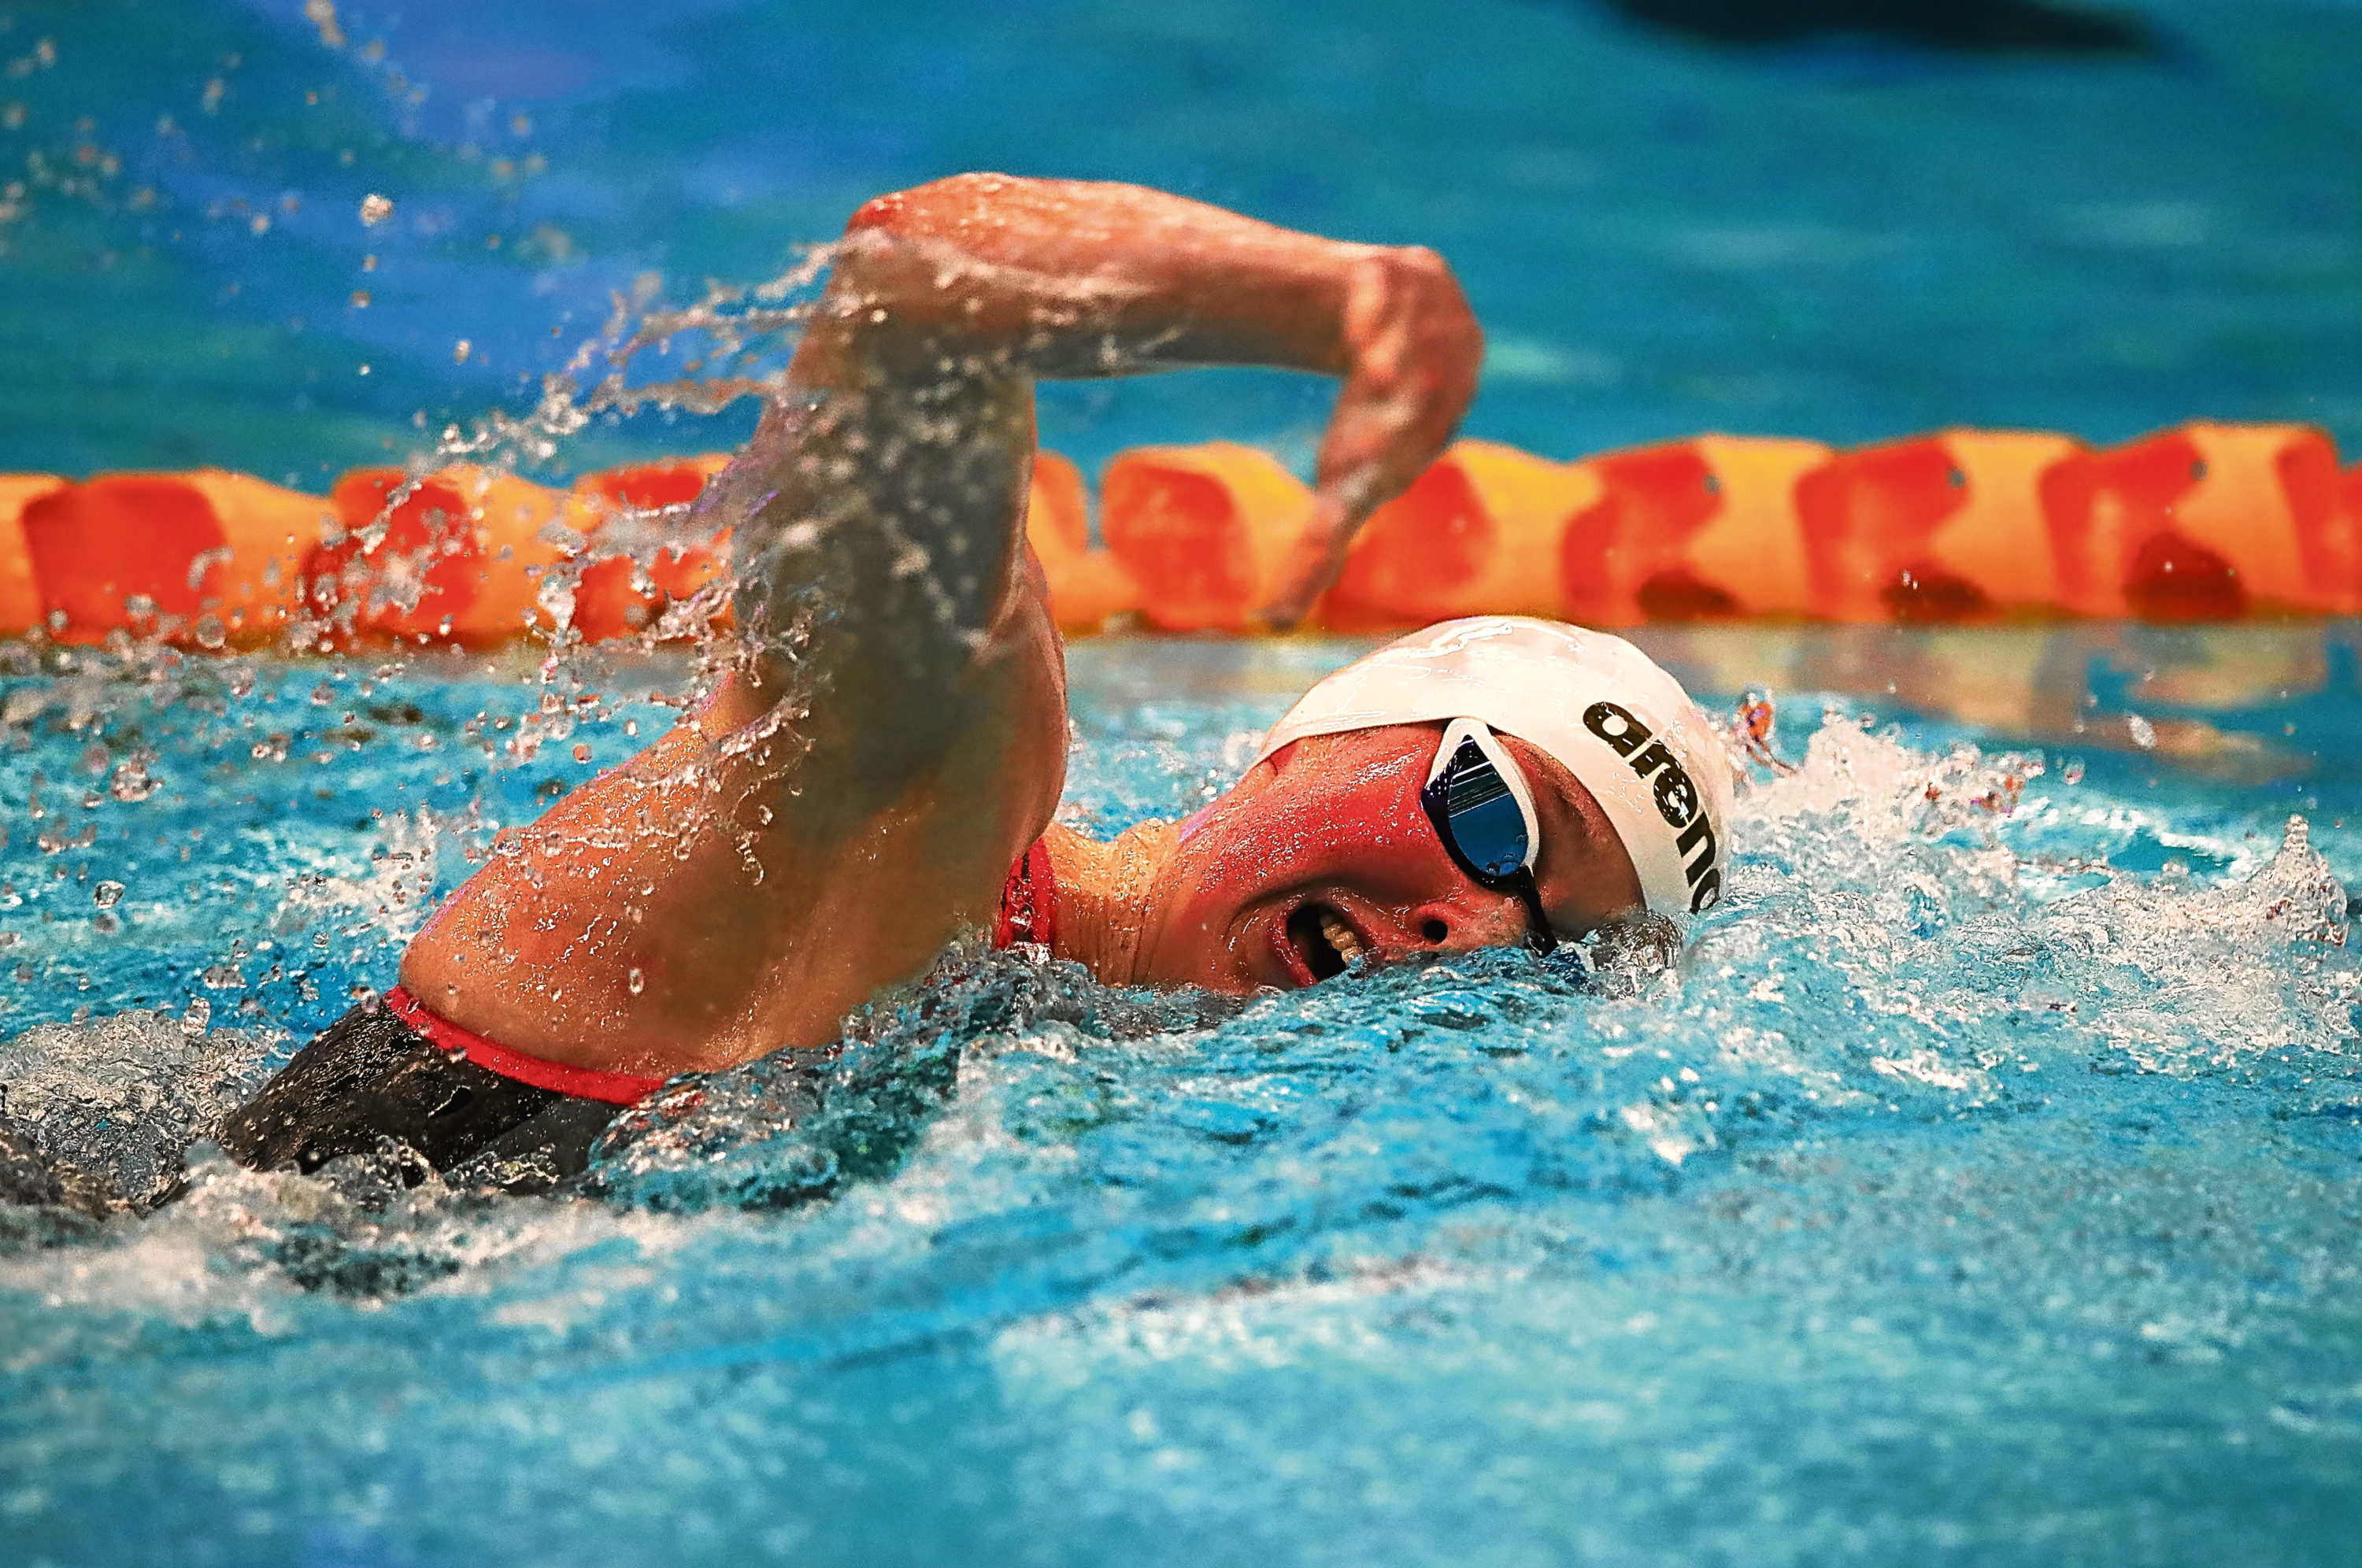 Hannah Miley of Aberdeen competes in the Women's 400m IM Final during the Edinburgh International Swim meet incorporating the British Championships at The Royal Commonwealth Pool.